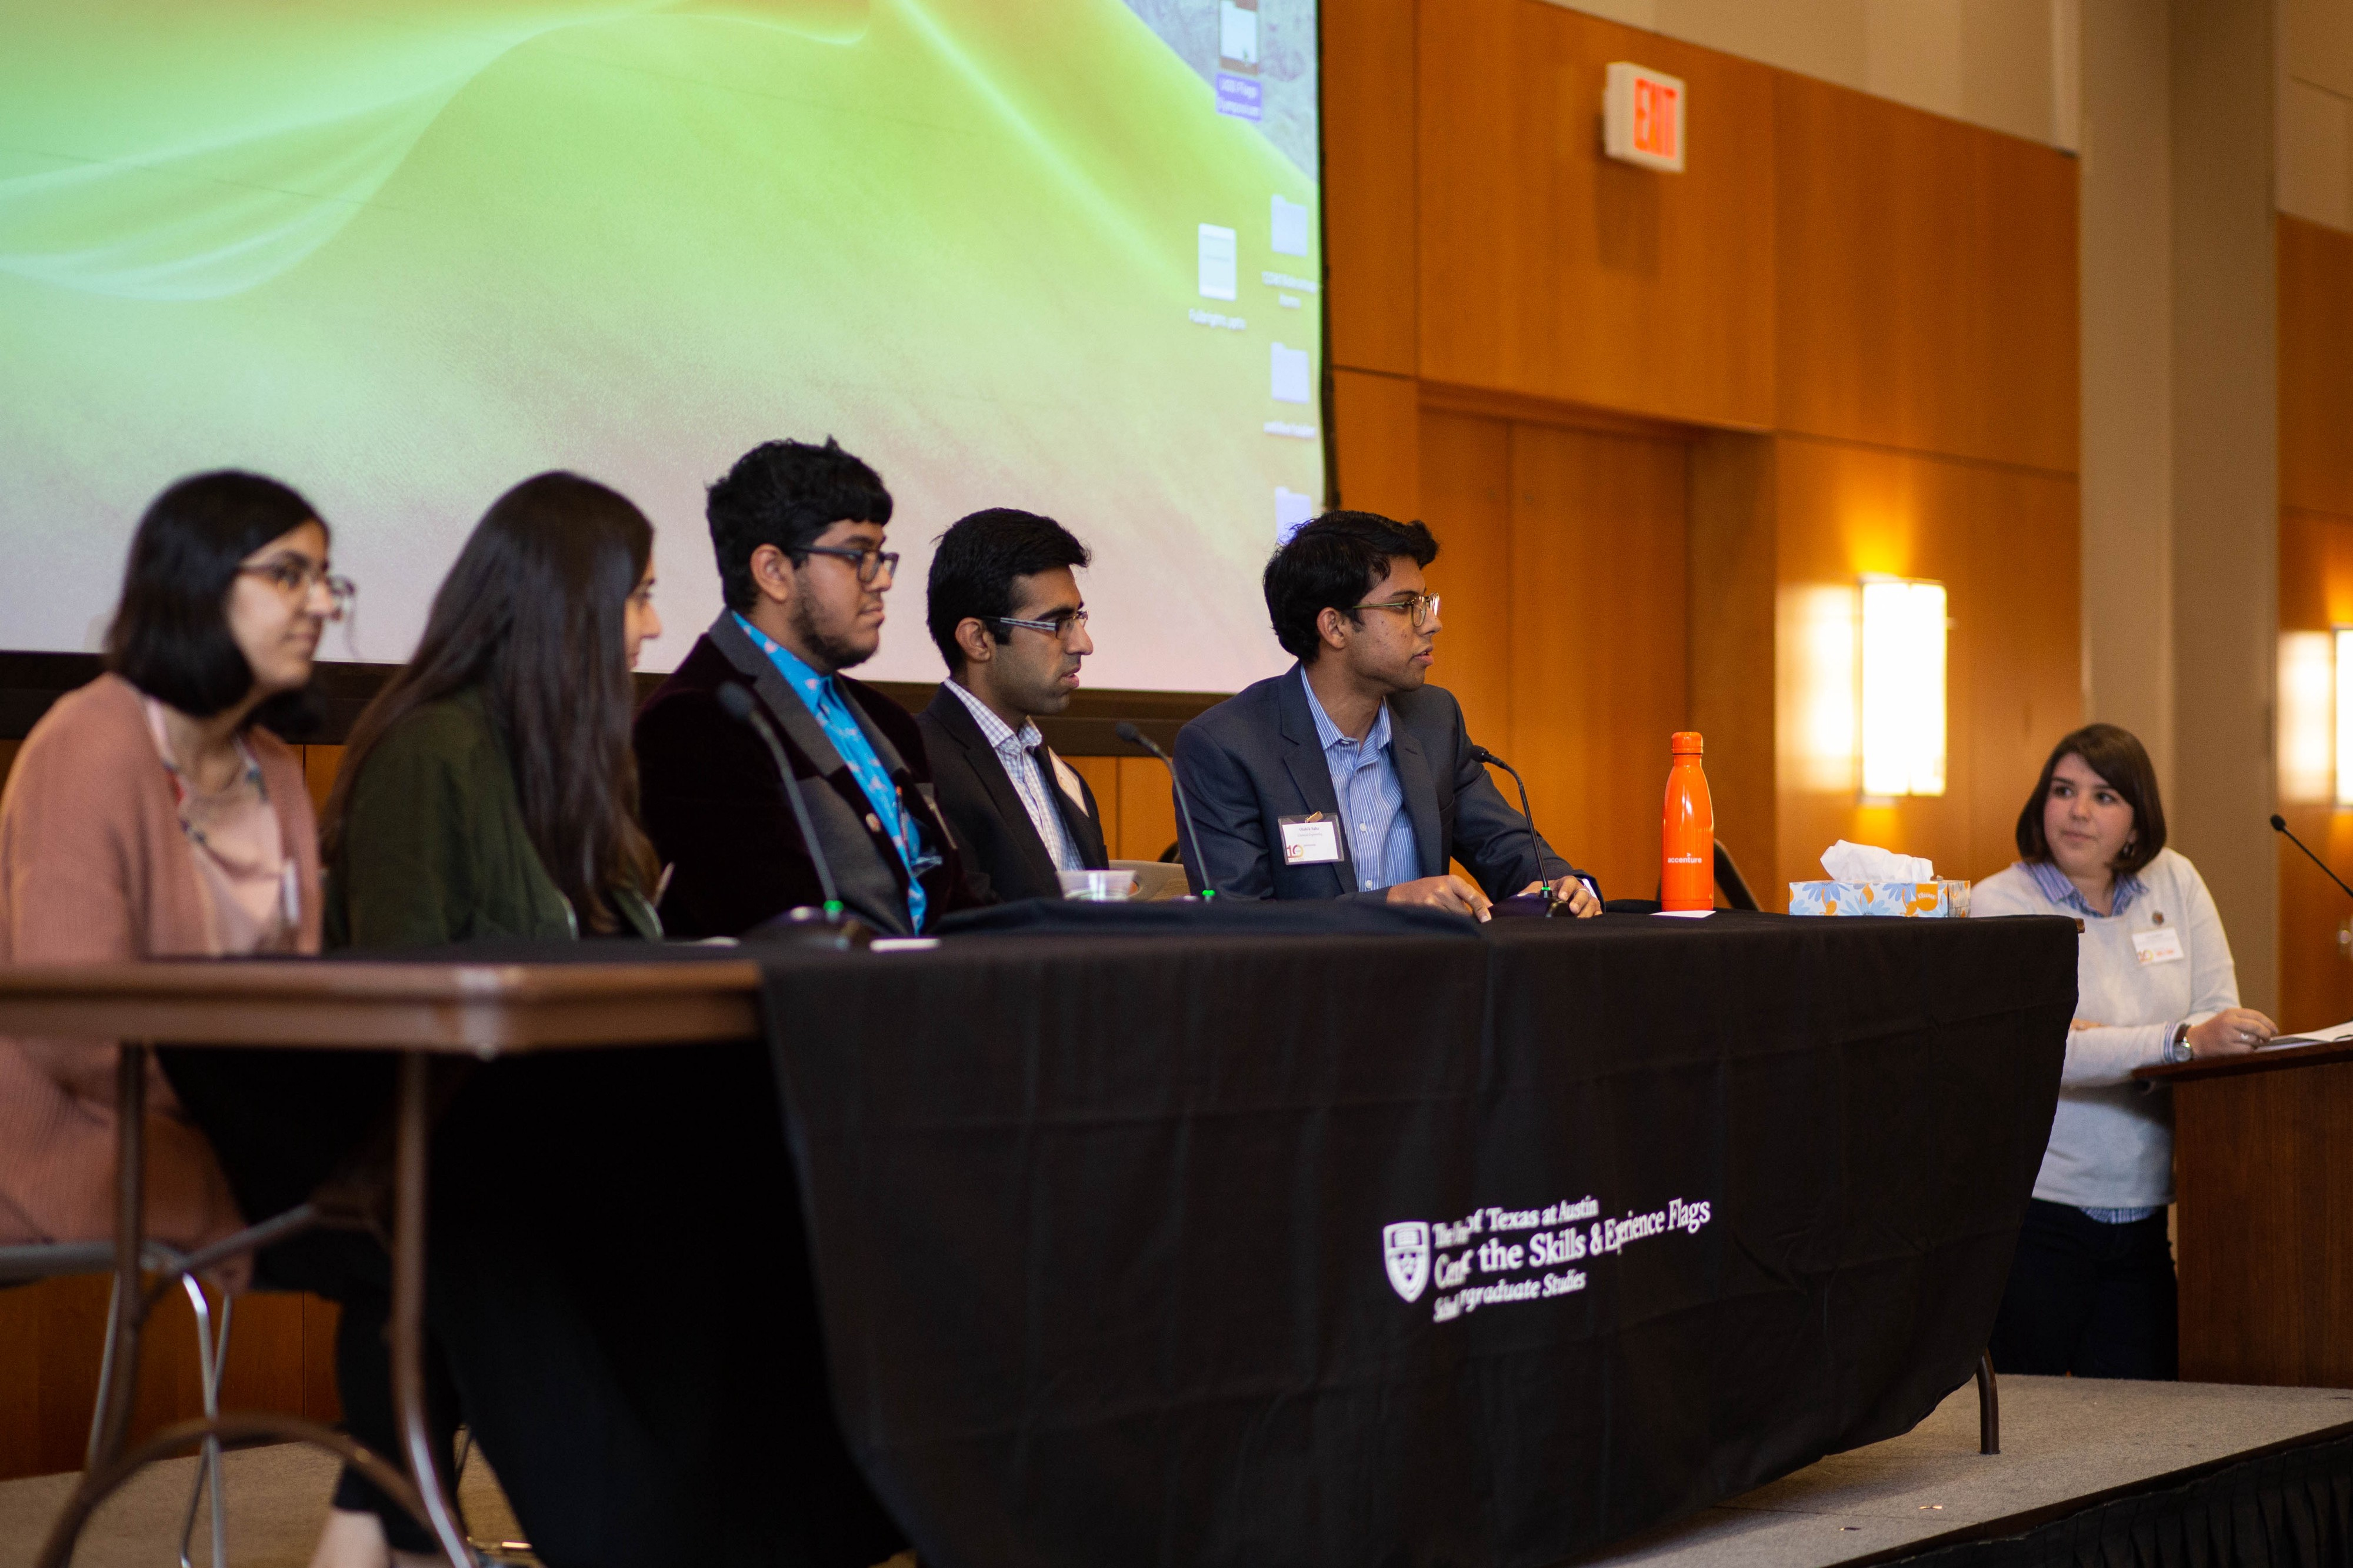 Five students sit in front of microphones at a table in a conference room. The panel moderator stand to the right of them.